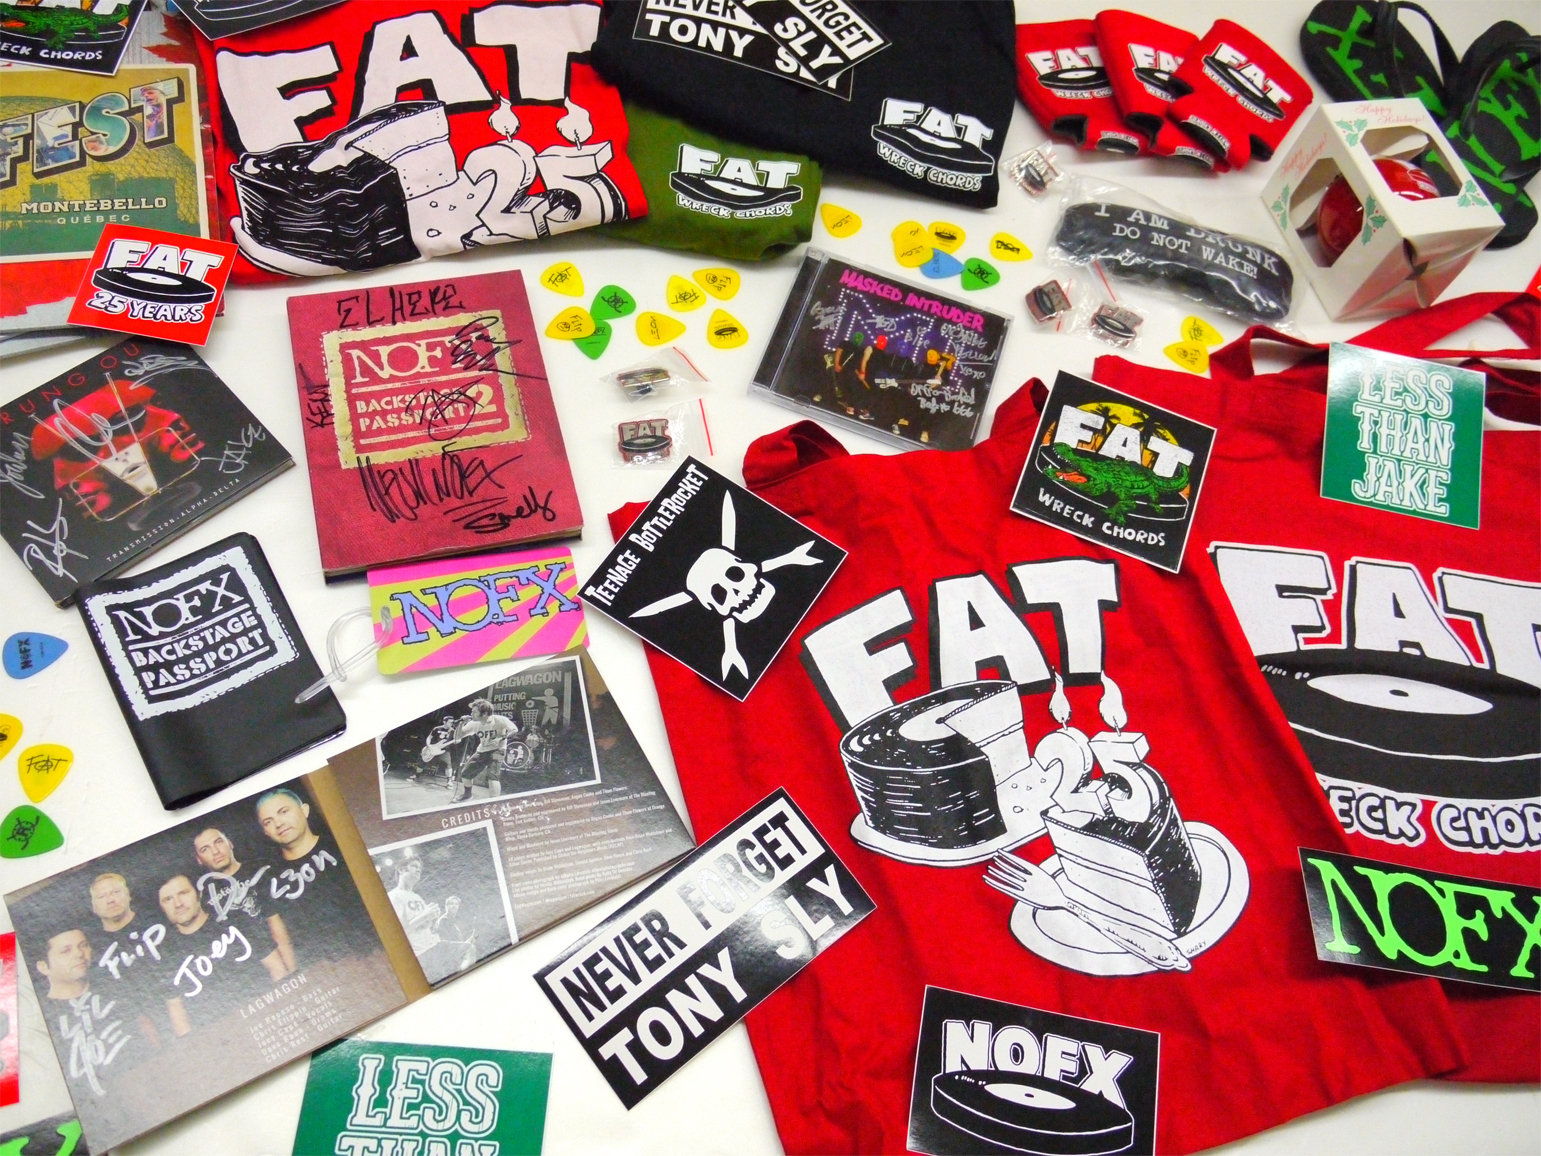 FAT WRECKED FOR 25 YEARSプレゼント小物参考画像